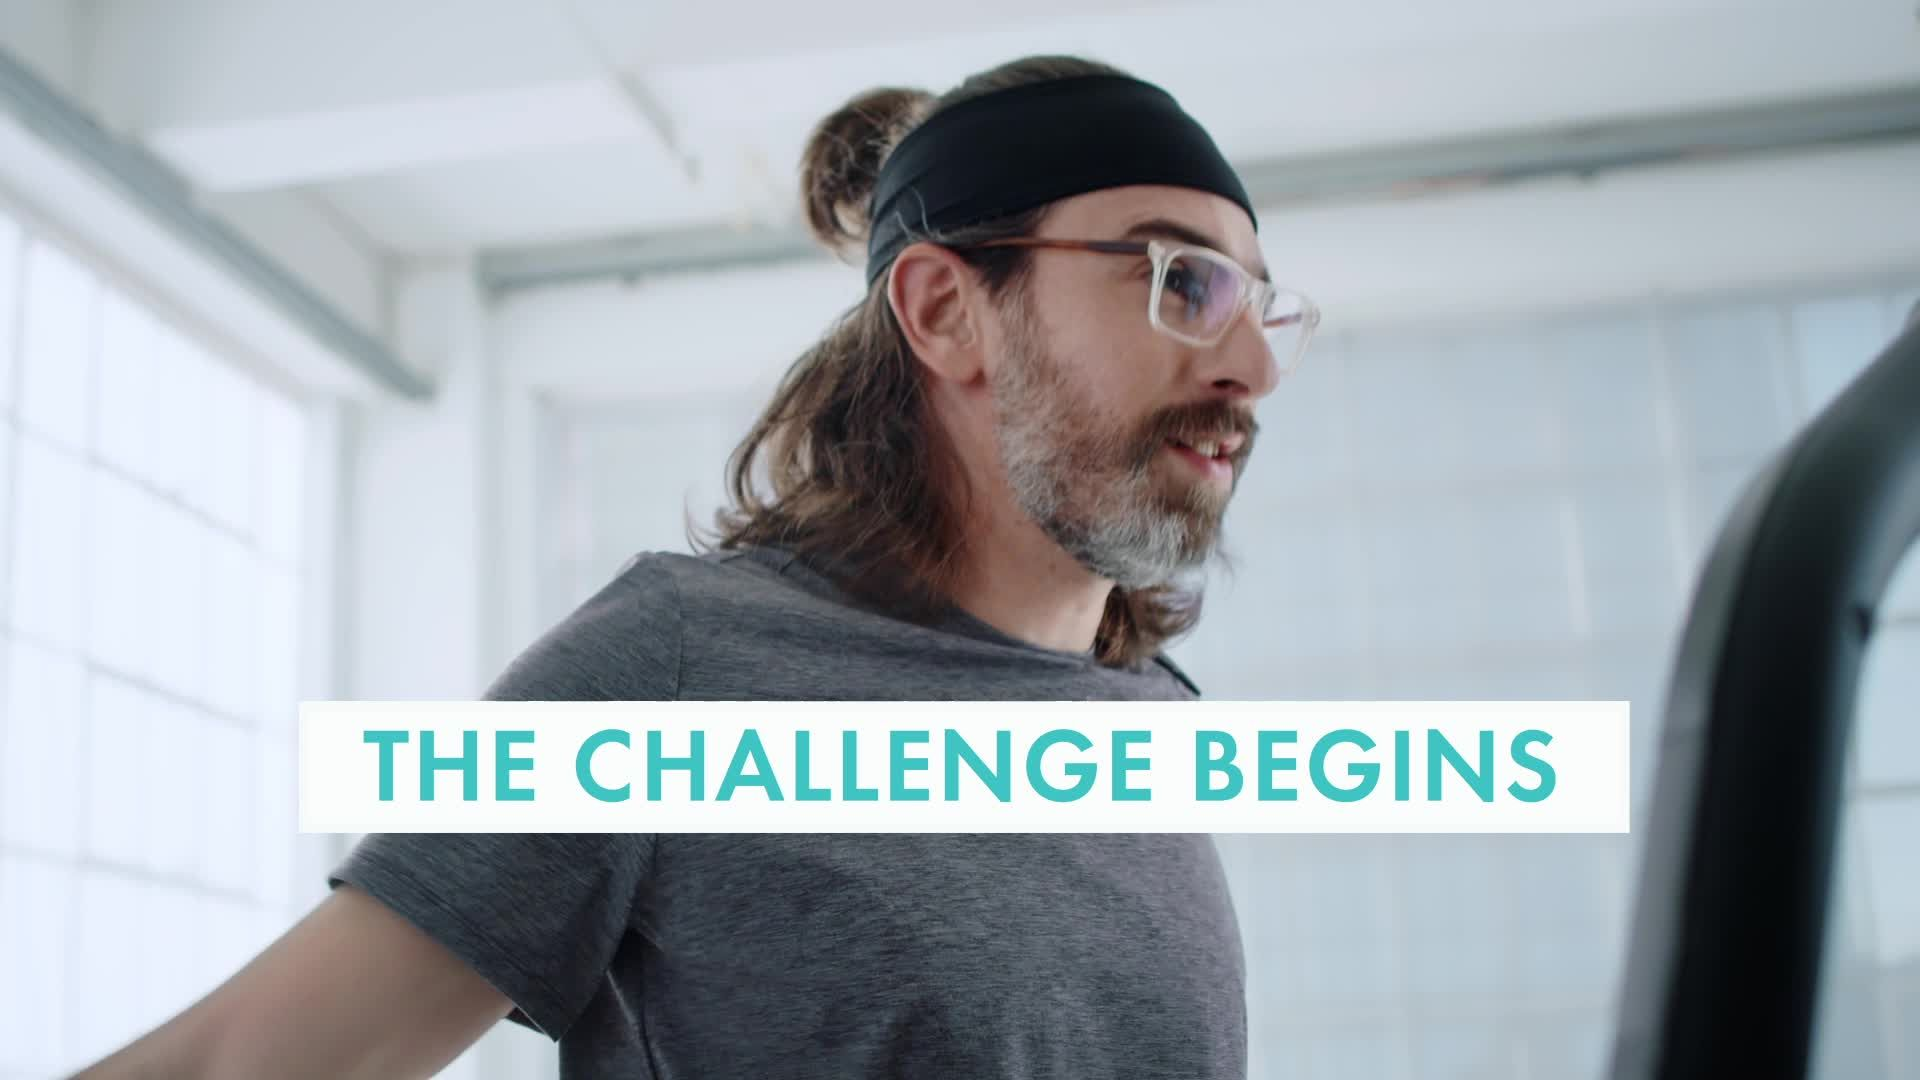 Think You Know Running? See How'd You Do in This Heart Rate Treadmill Challenge.